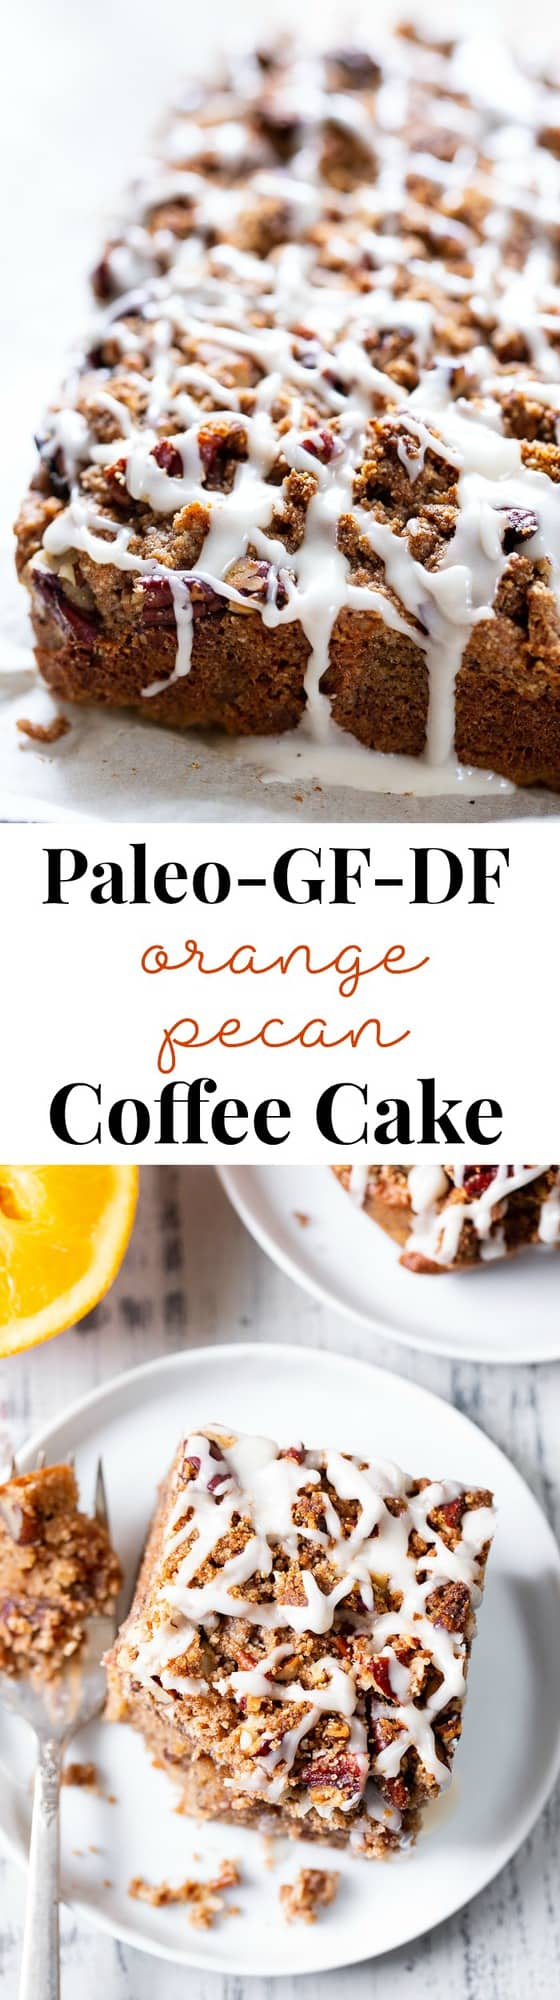 This pecan coffee cake is moist, sweet, with lots of orange and cinnamon flavor and a toasty pecan crumb top. It's gluten-free, grain-free, with dairy-free options. A family favorite that it sure to become a hit in your house!